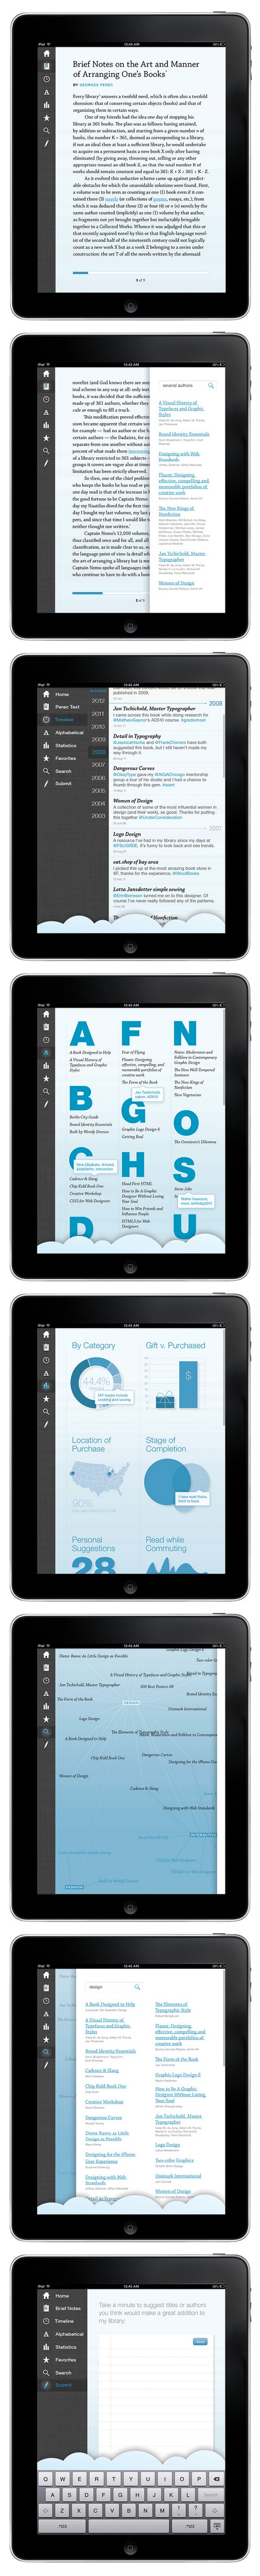 Now this is well thought out UI design - nice work. Social Bookshelf for the iPad / by Victoria Pater